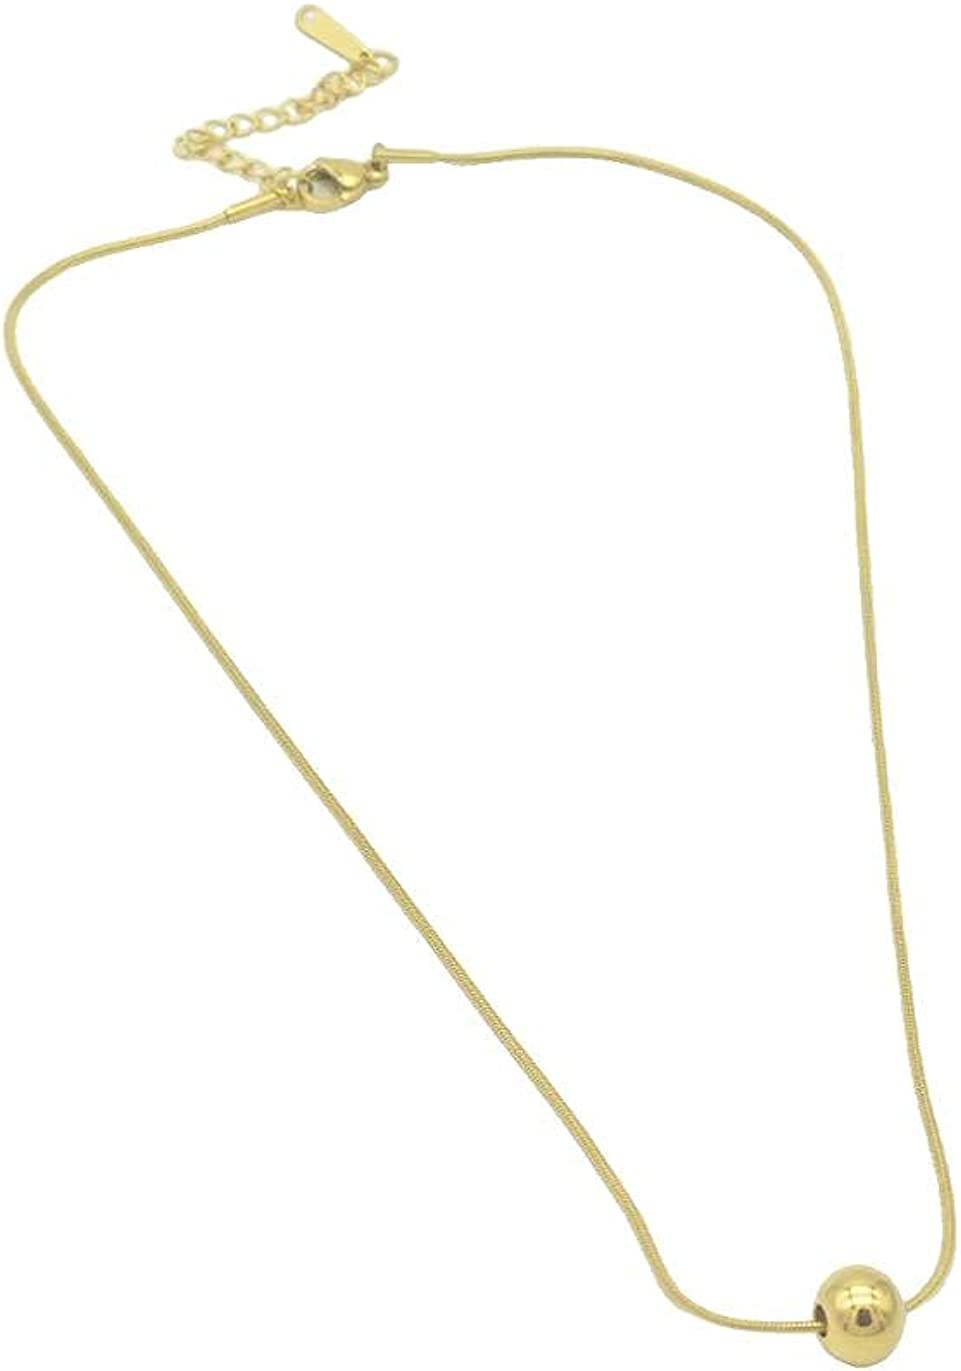 DOEPC Gold Plated Round Bead Pendant Necklace, Suitable For Women And Girls On Any Occasion, Made Of Titanium Steel,The Color Will Stay Good